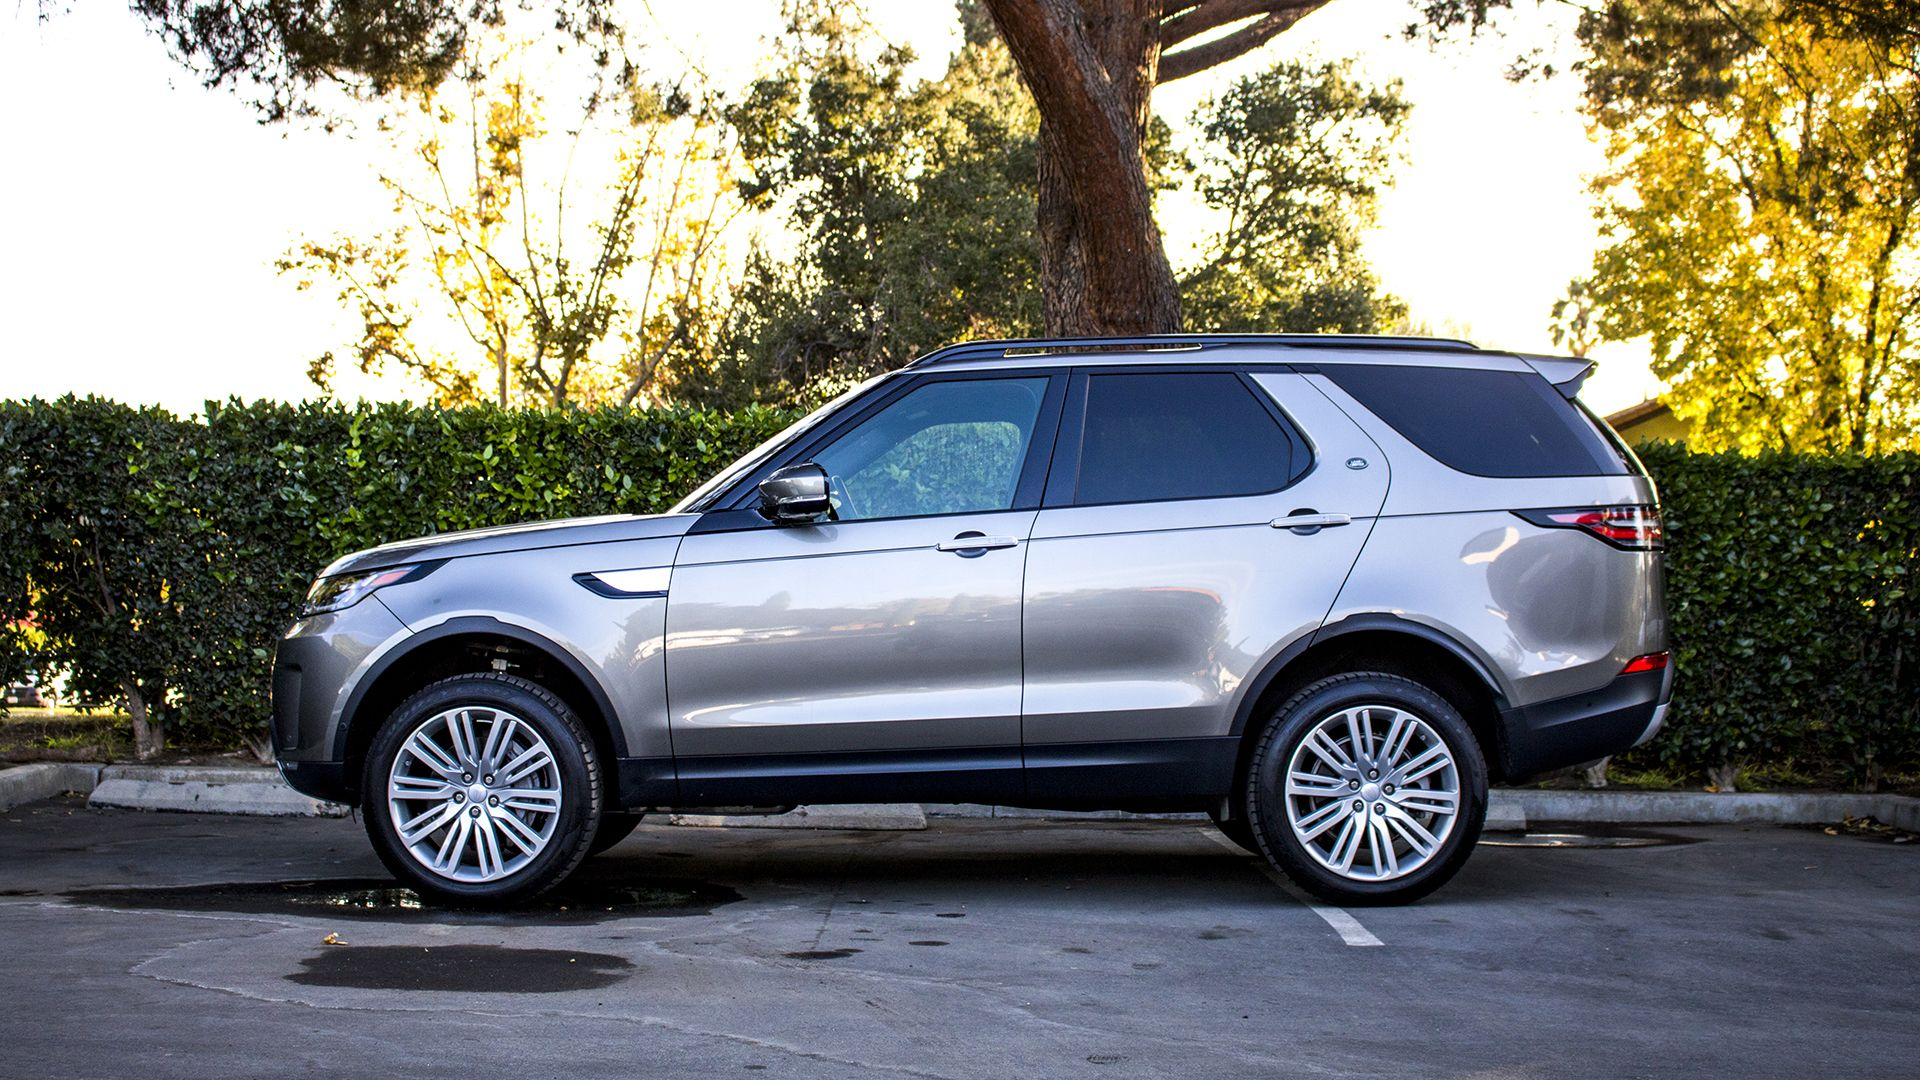 2018 Land Rover Discovery Hse Luxury Review Disco Never Dies At Least In The Suv World Land Rover Discovery Land Rover Drive